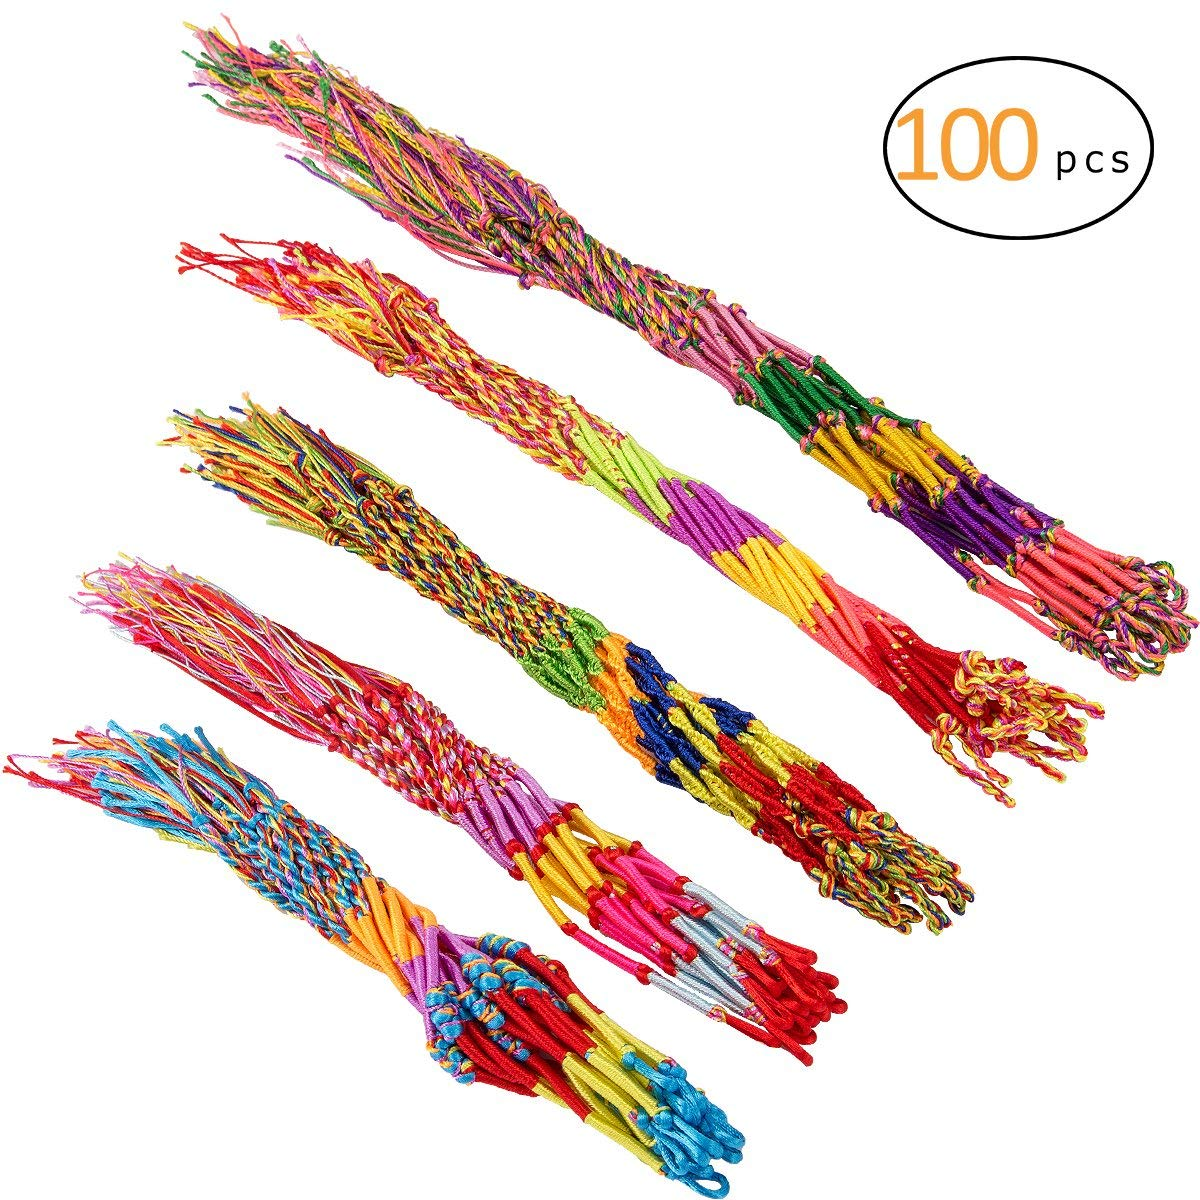 Cosweet Braided Friendship Cords-100PCS 5 Colors Handmade Assorted Strand Wrist Colorful Thread Bracelet for Wrist Anklet